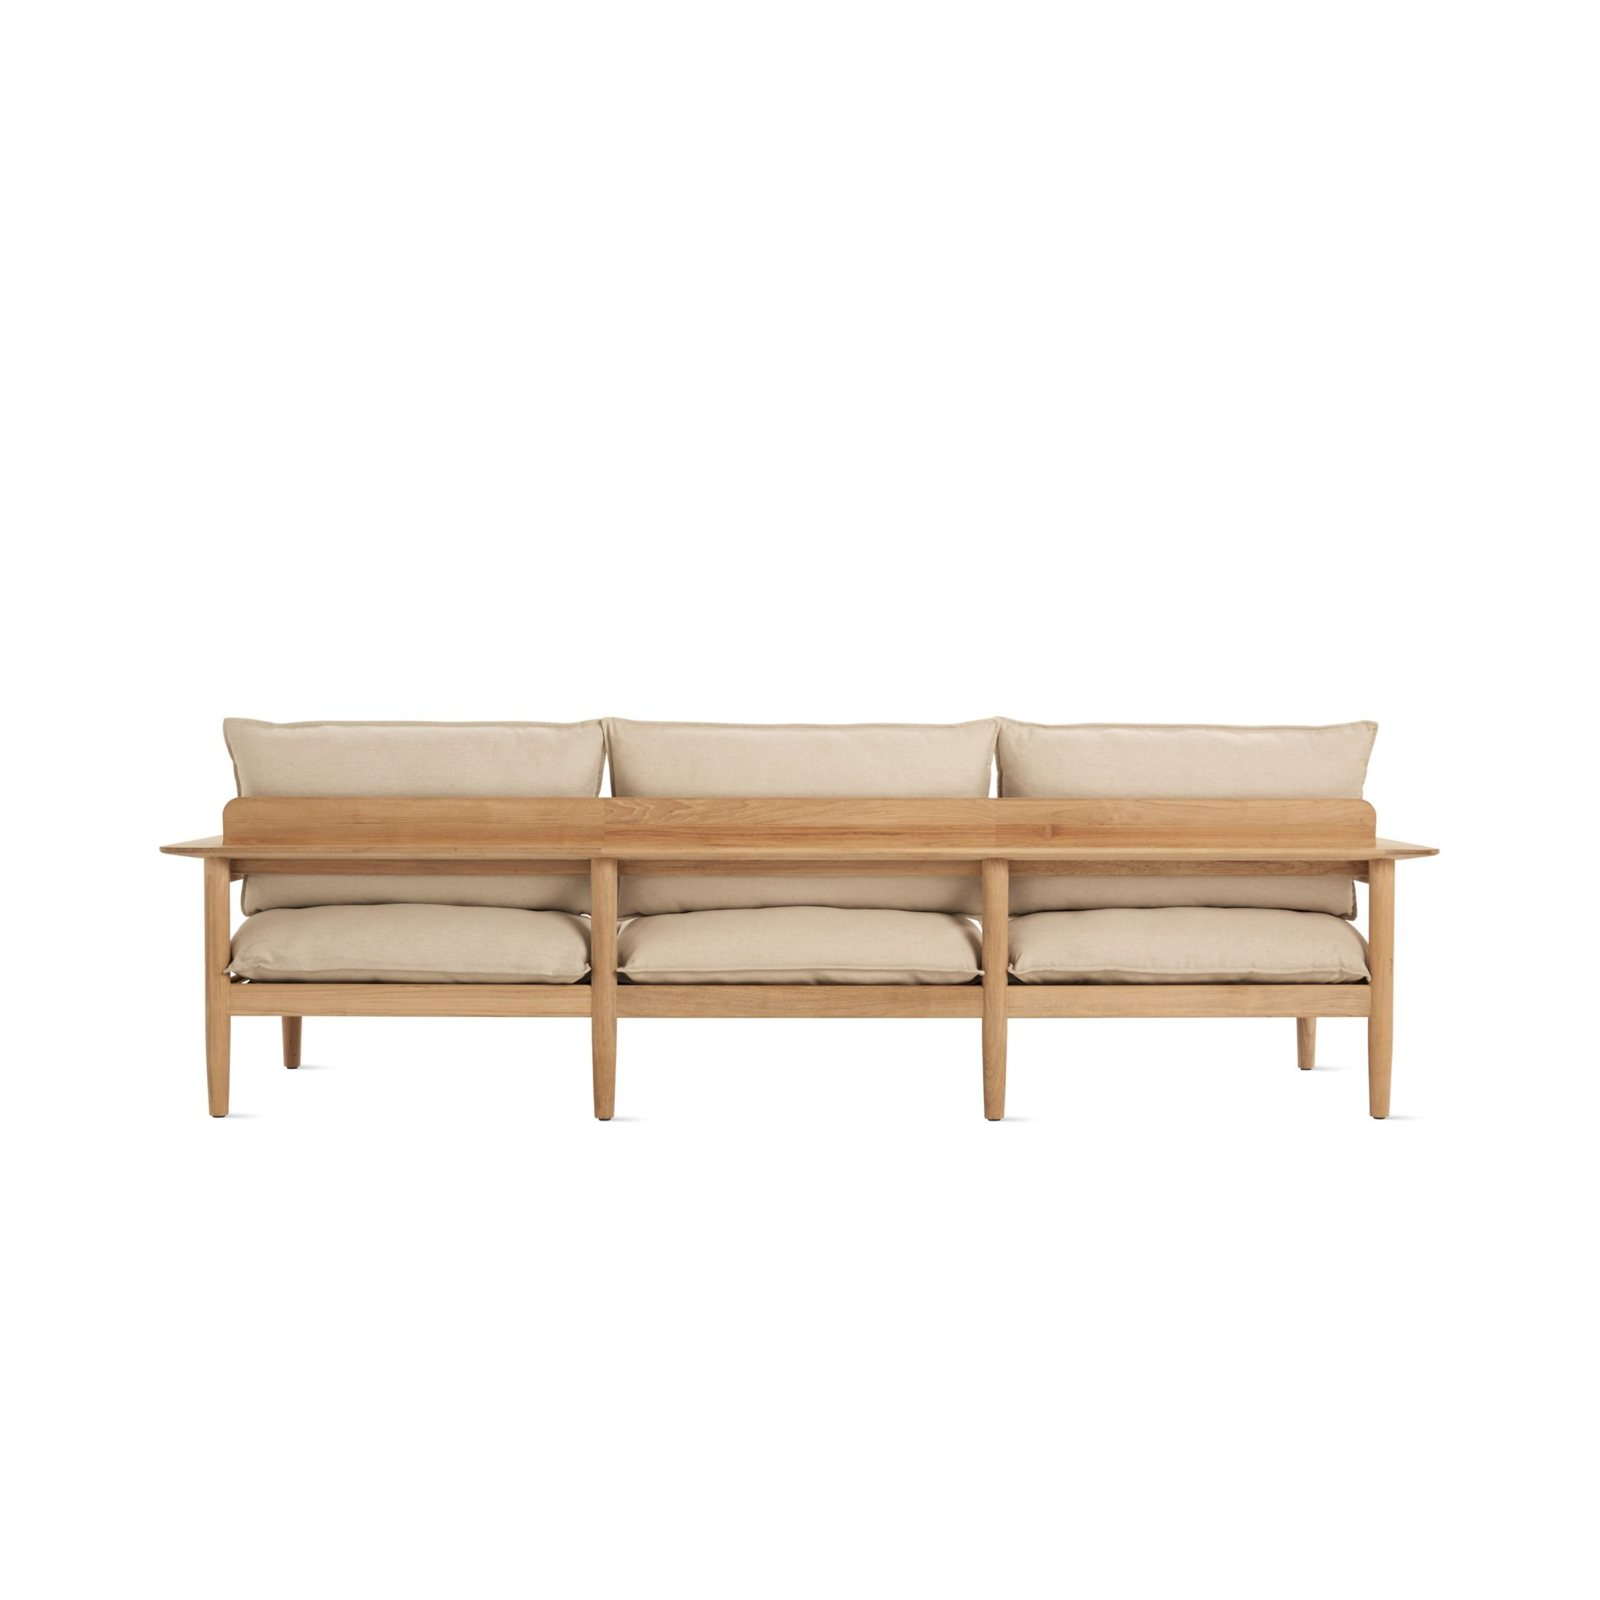 Terassi Three Seater Sofa By Studio Tolvanen For Design